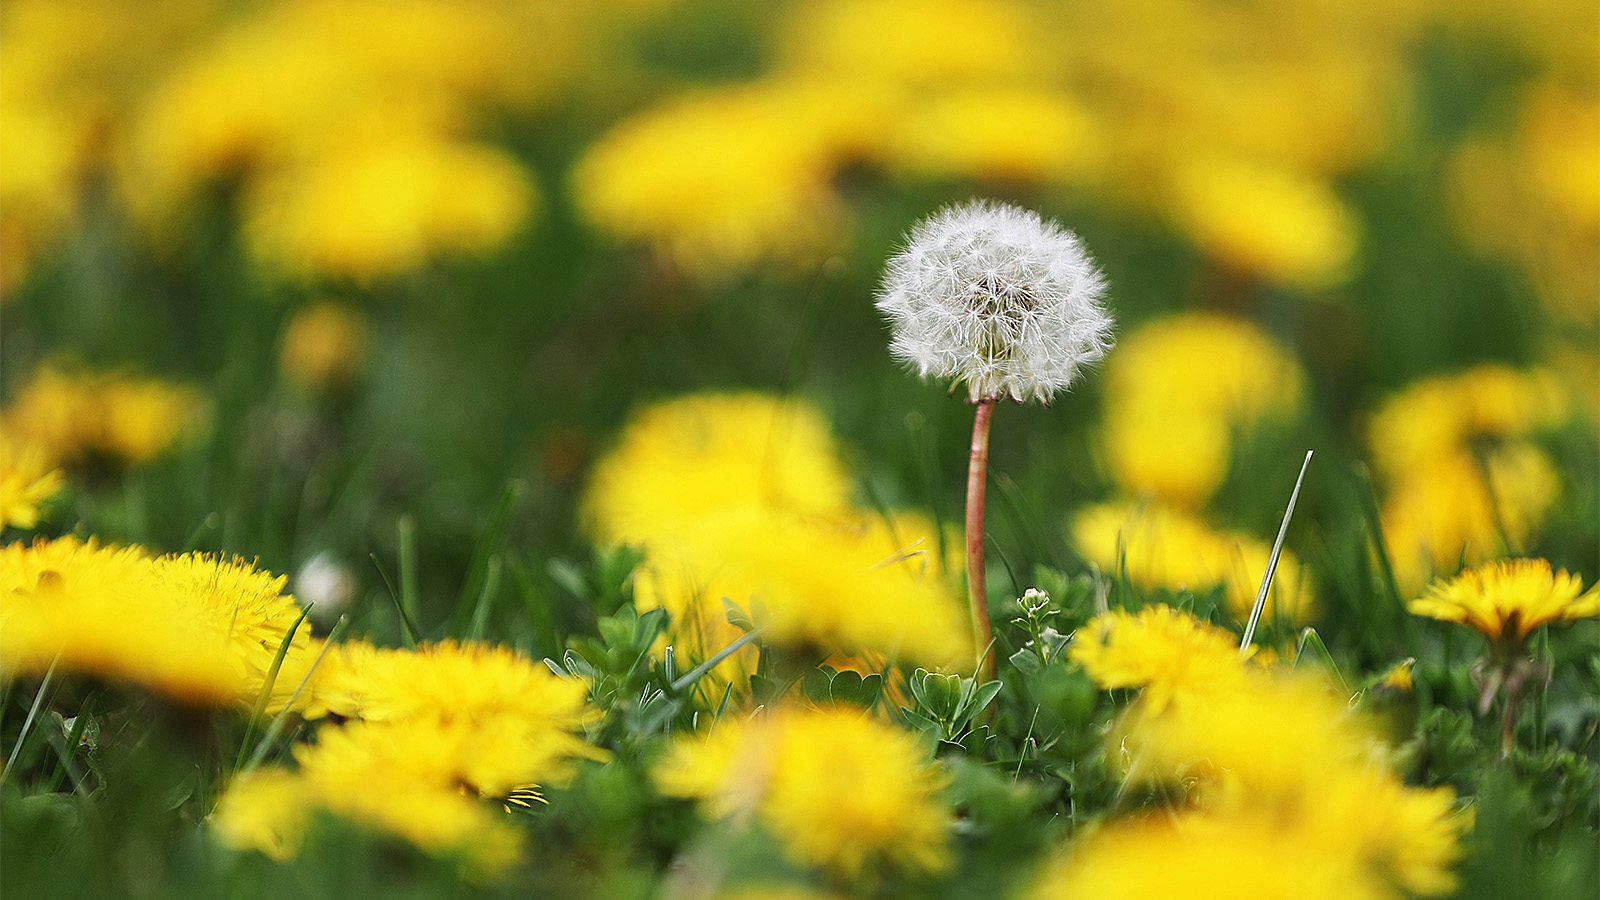 Day 138: May 18, 2018 - A fully seeded dandelion stands out among all the ones in bloom on Maple Road in Amherst.